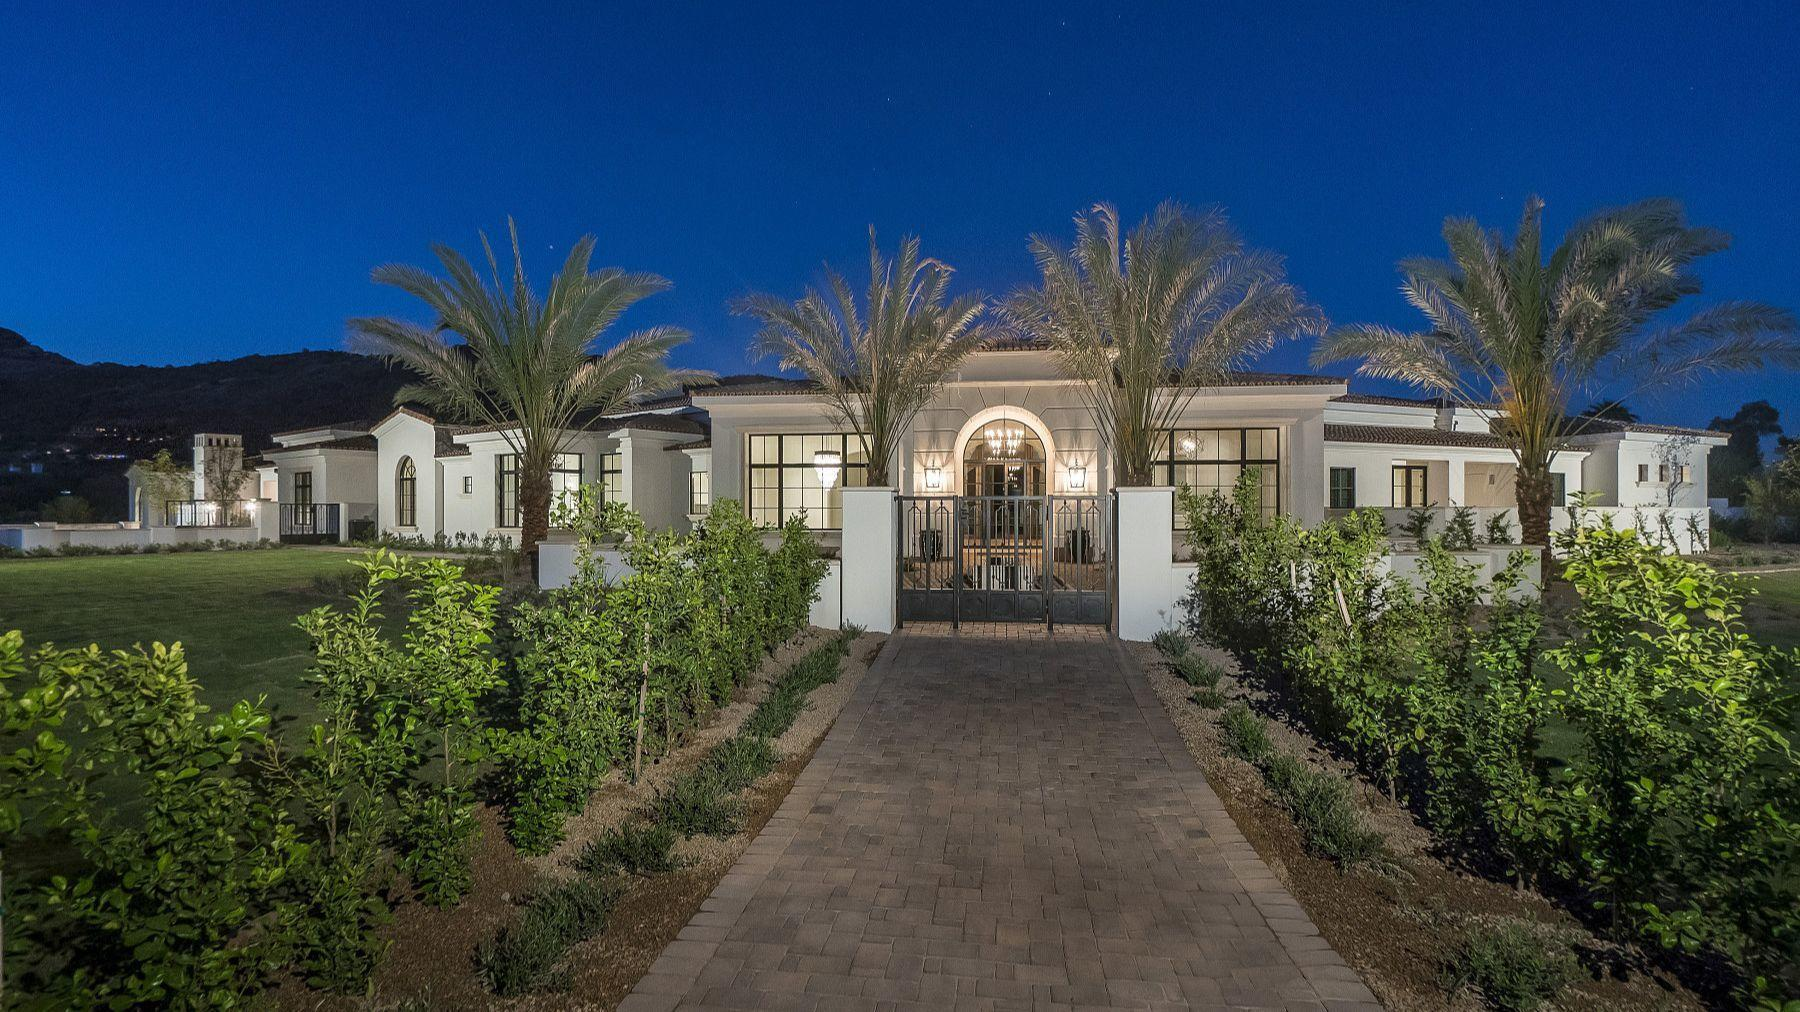 New Arizona mansion linked to Michael Phelps  Baltimore Sun